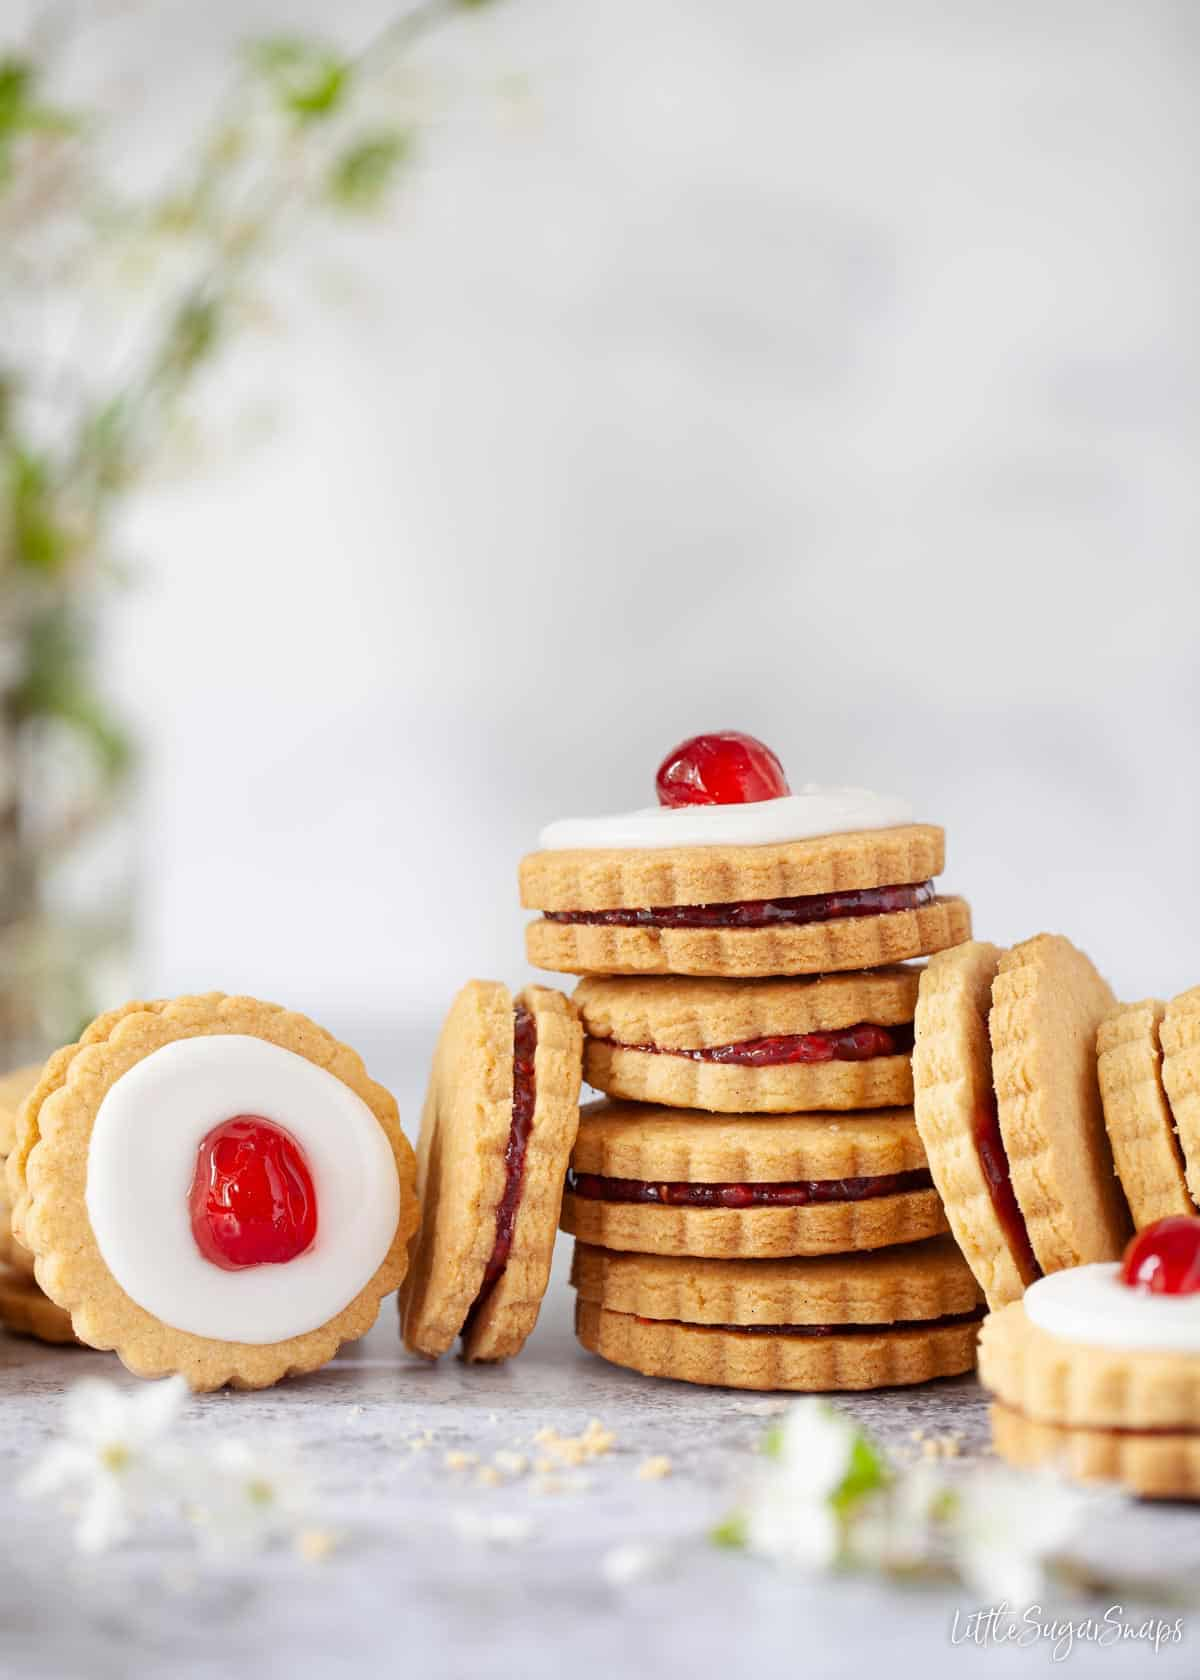 Empire biscuits stacked up. Some are iced and topped with cherries, some are not